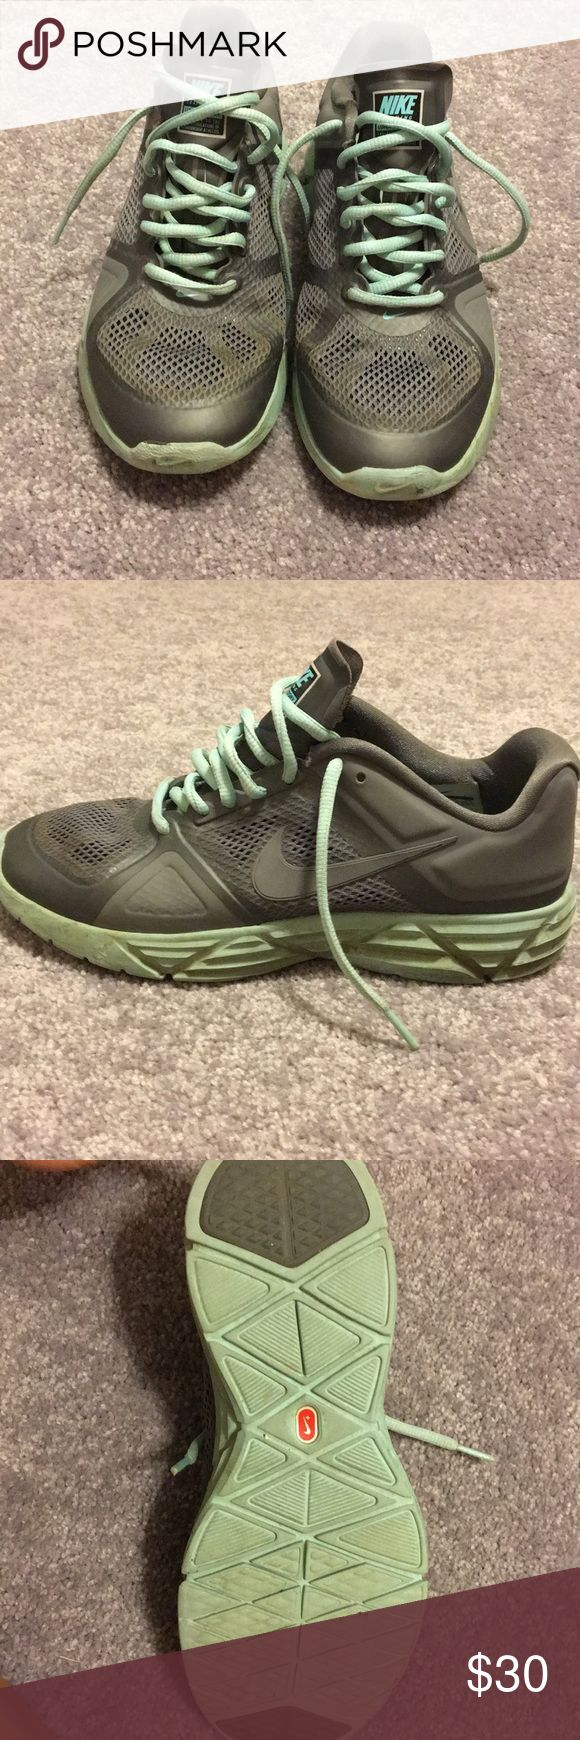 Nike lunar victory running shoes Great condition! Size 7.5 Nike Shoes Athletic Shoes